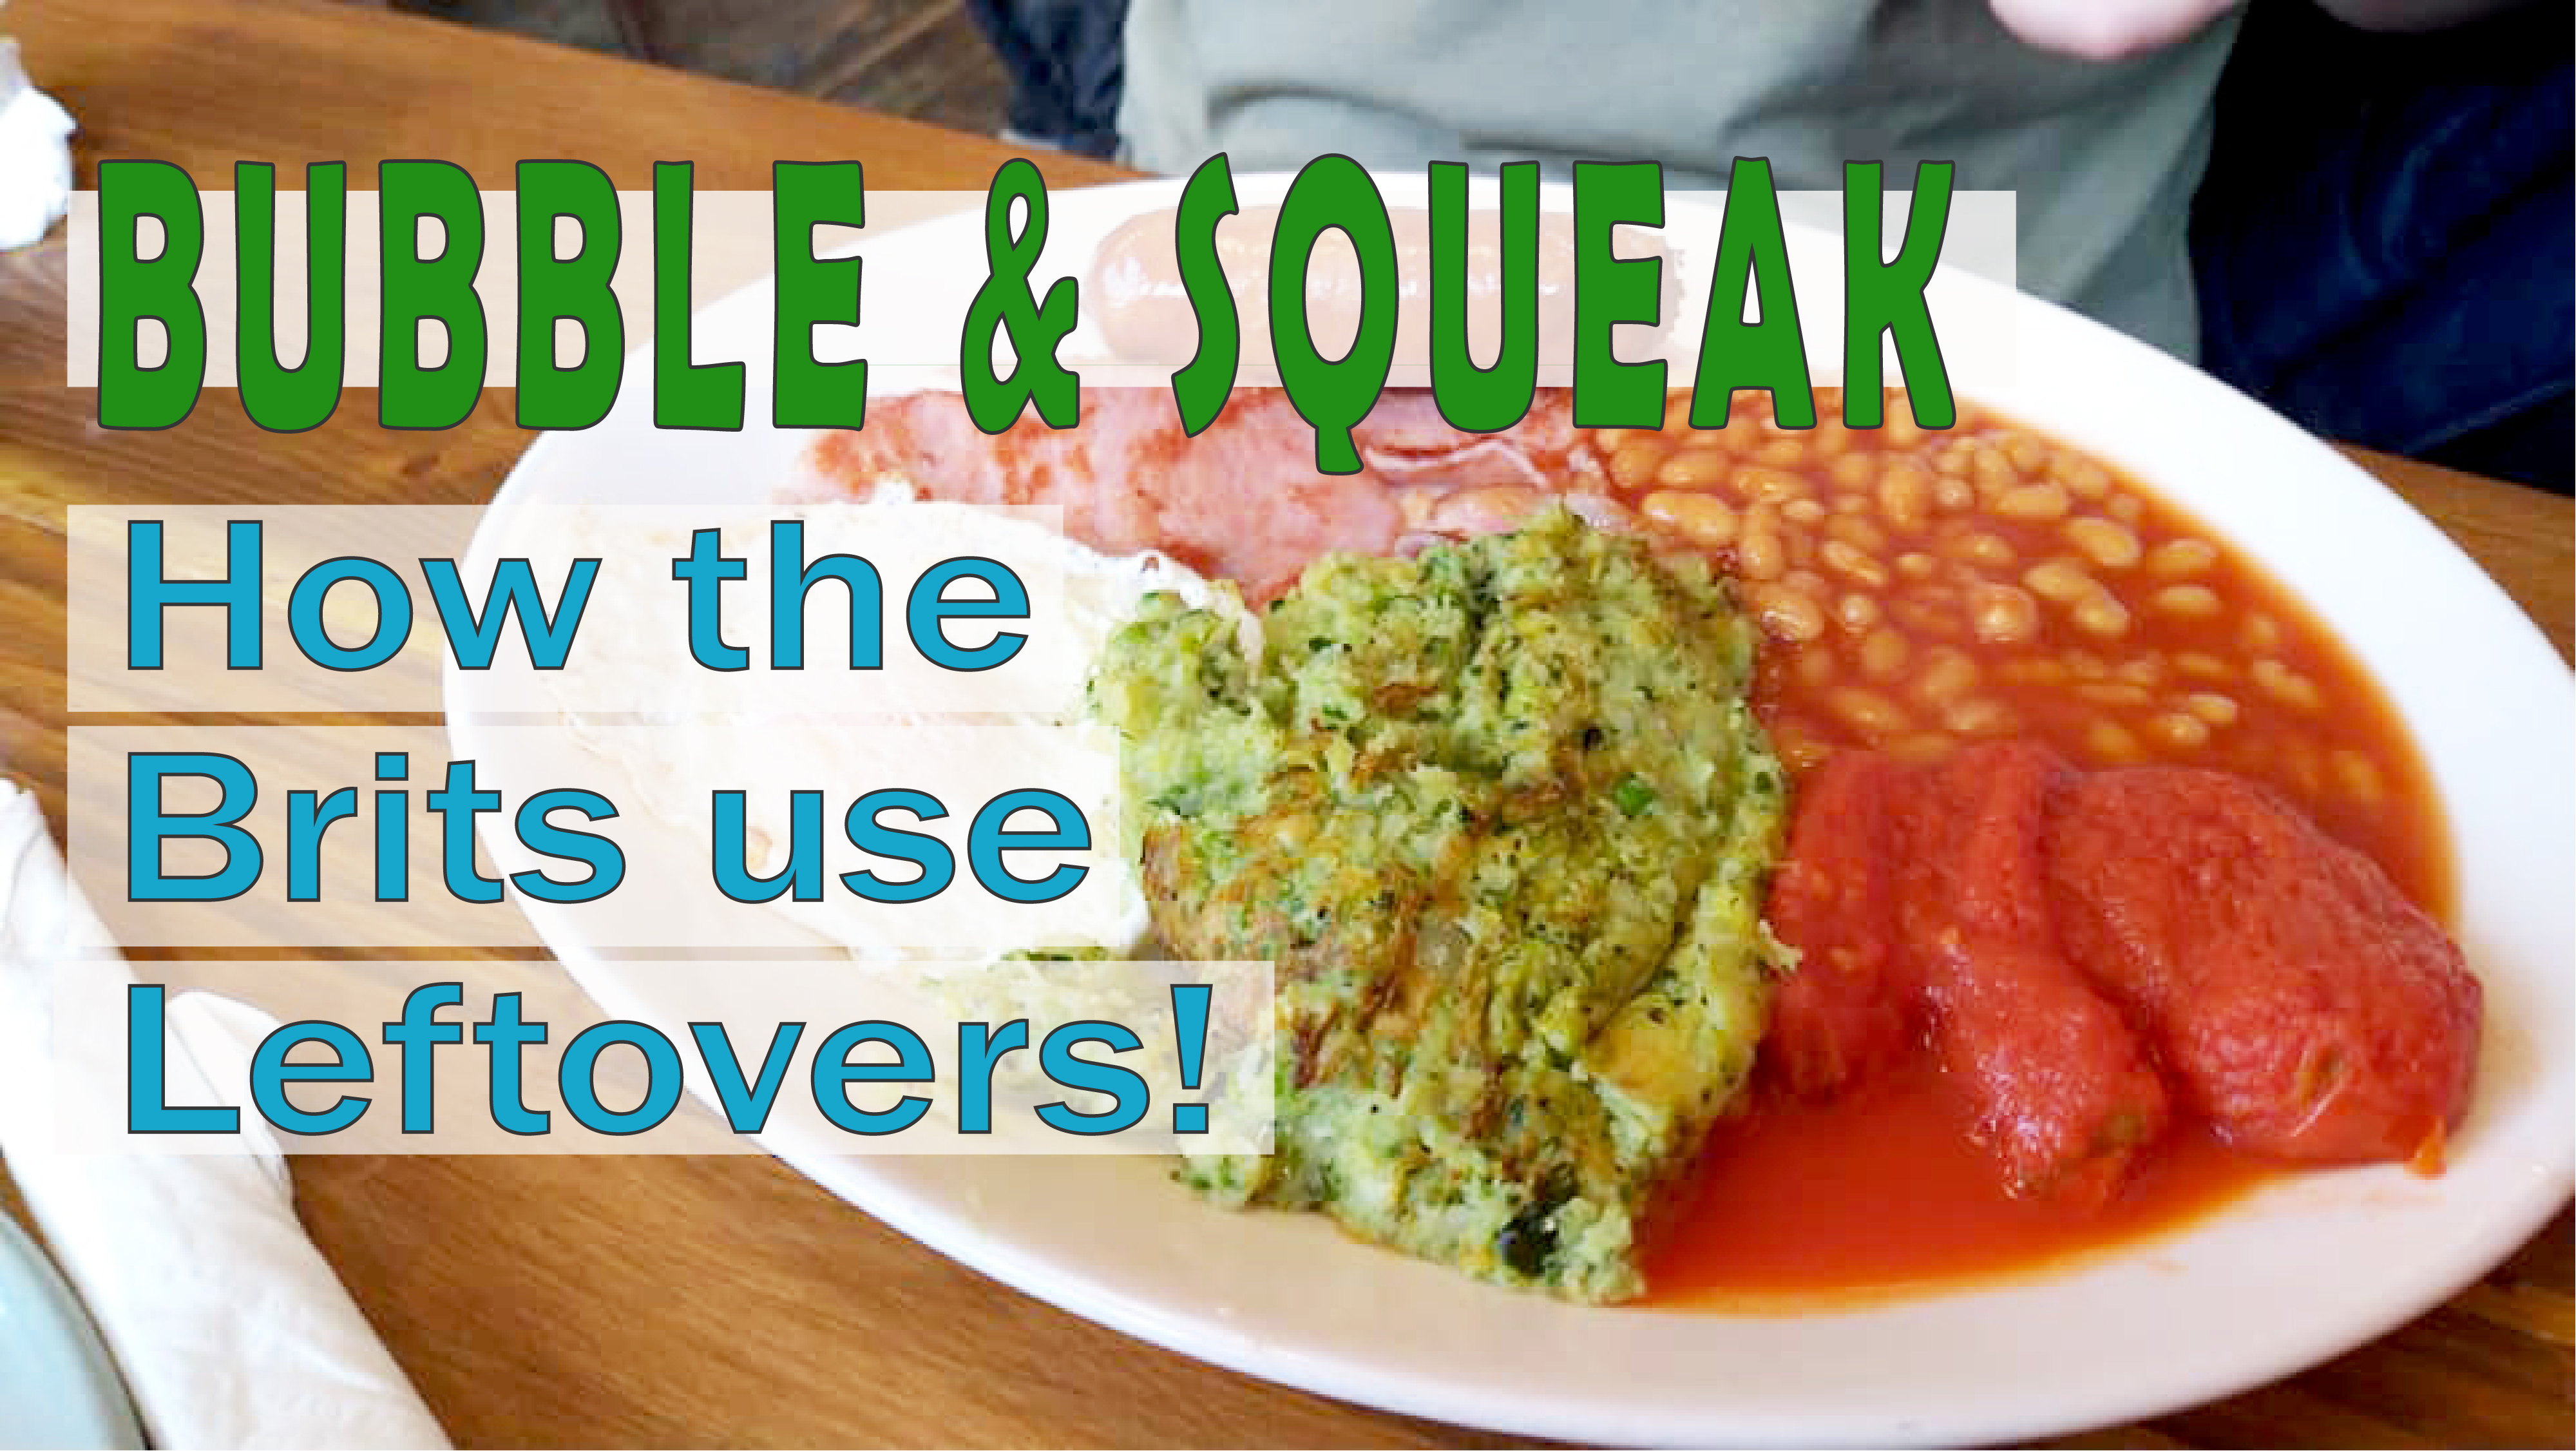 BUBBLE & SQUEAK | How the Brits use leftovers